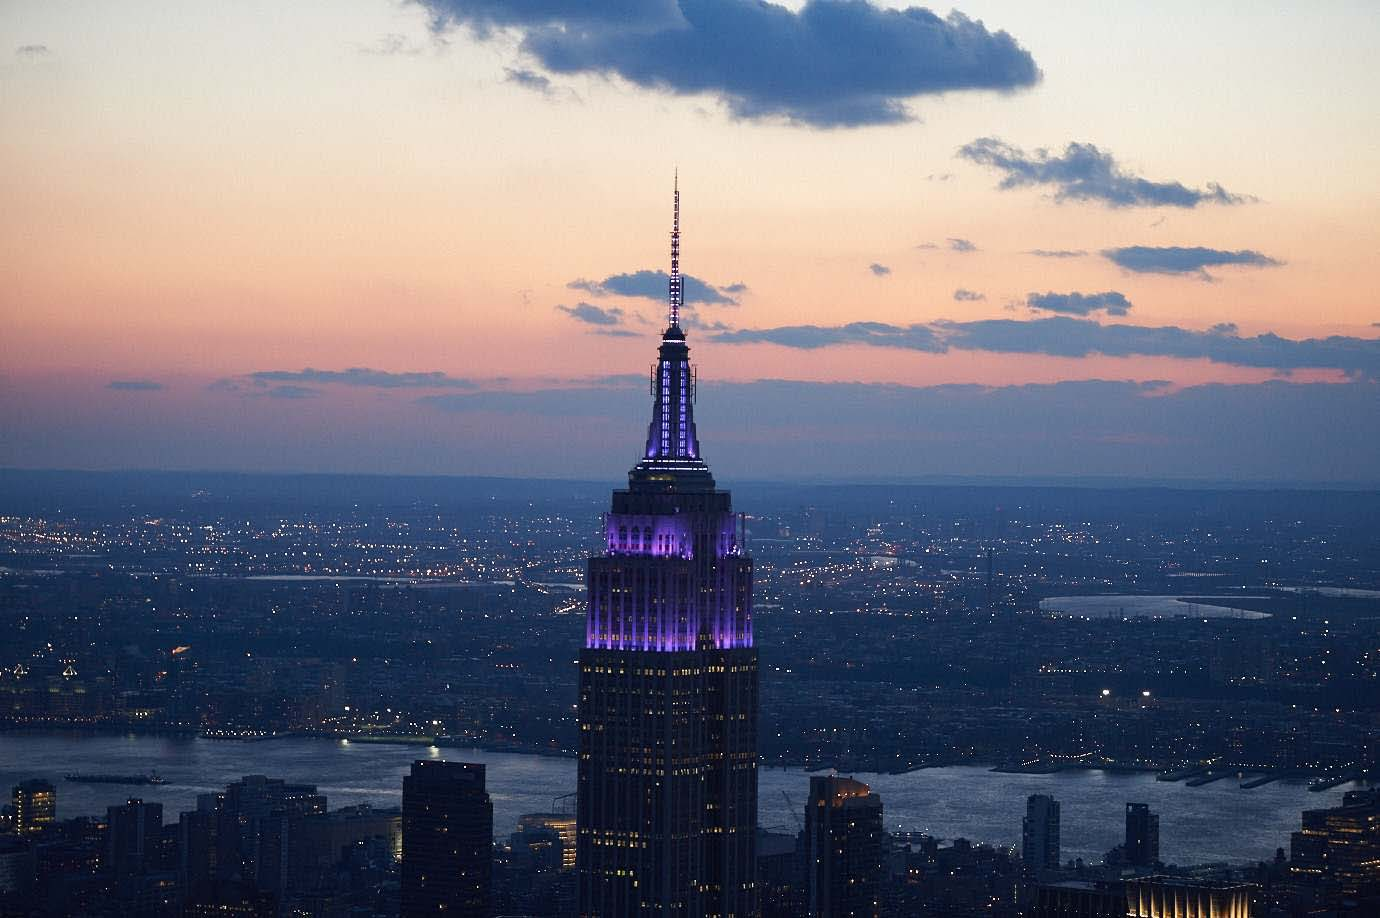 The Empire State Building towers will light purple on November 17, World Prematurity Day. Buildings and landmarks from around the world will light purple that day to raise awareness about the serious problem of premature birth. #WorldPrematurityDay